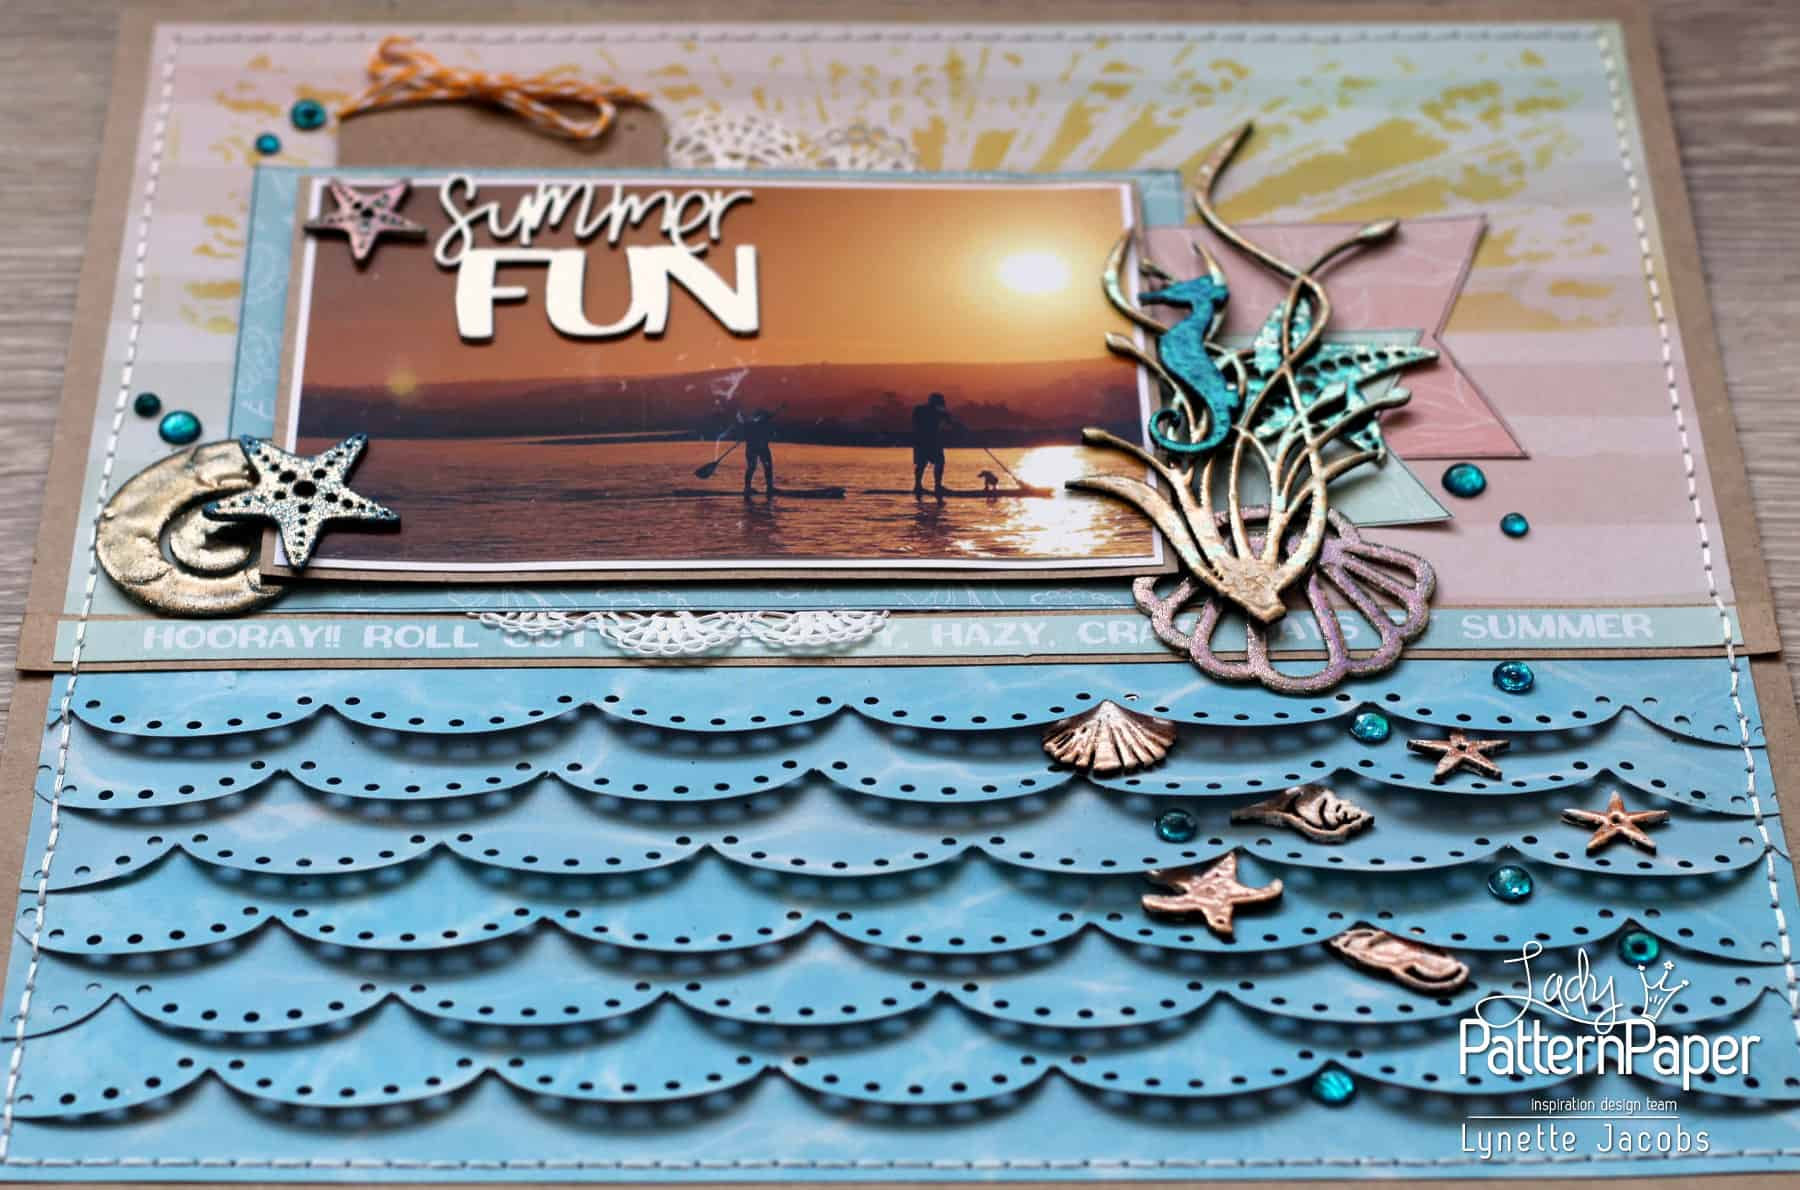 Lynette's Summer FUN Layout - Angle